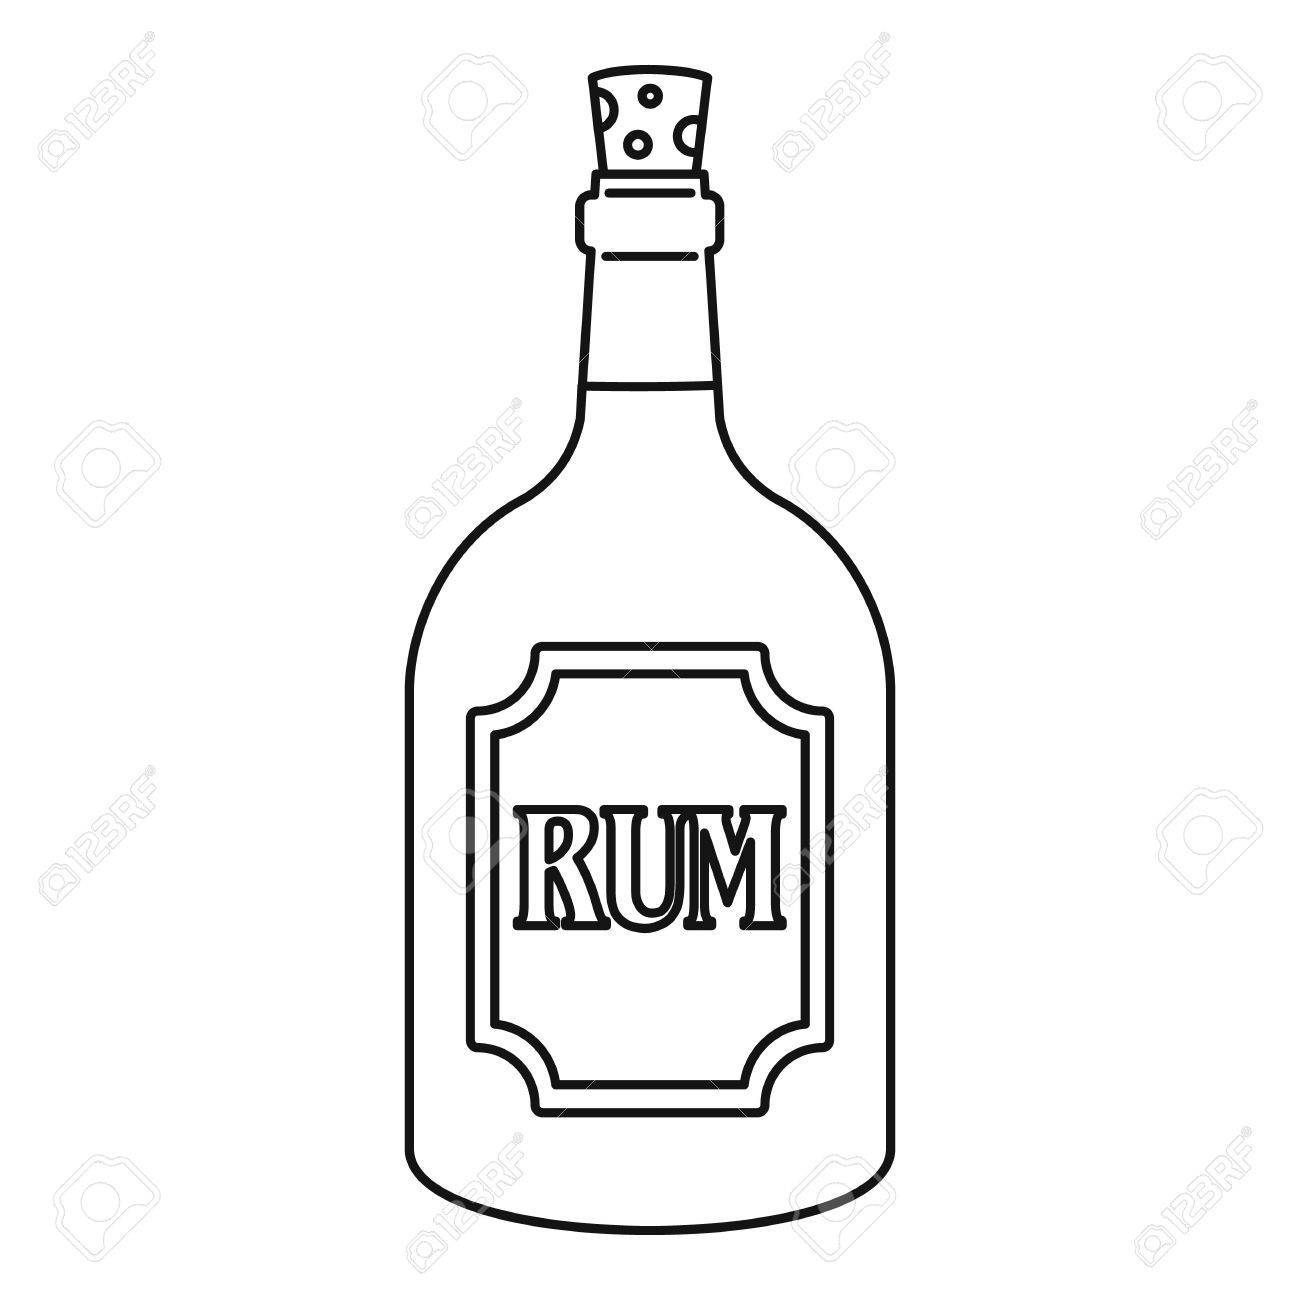 Rum clipart svg freeuse stock Rum icon, outline style » Clipart Portal svg freeuse stock